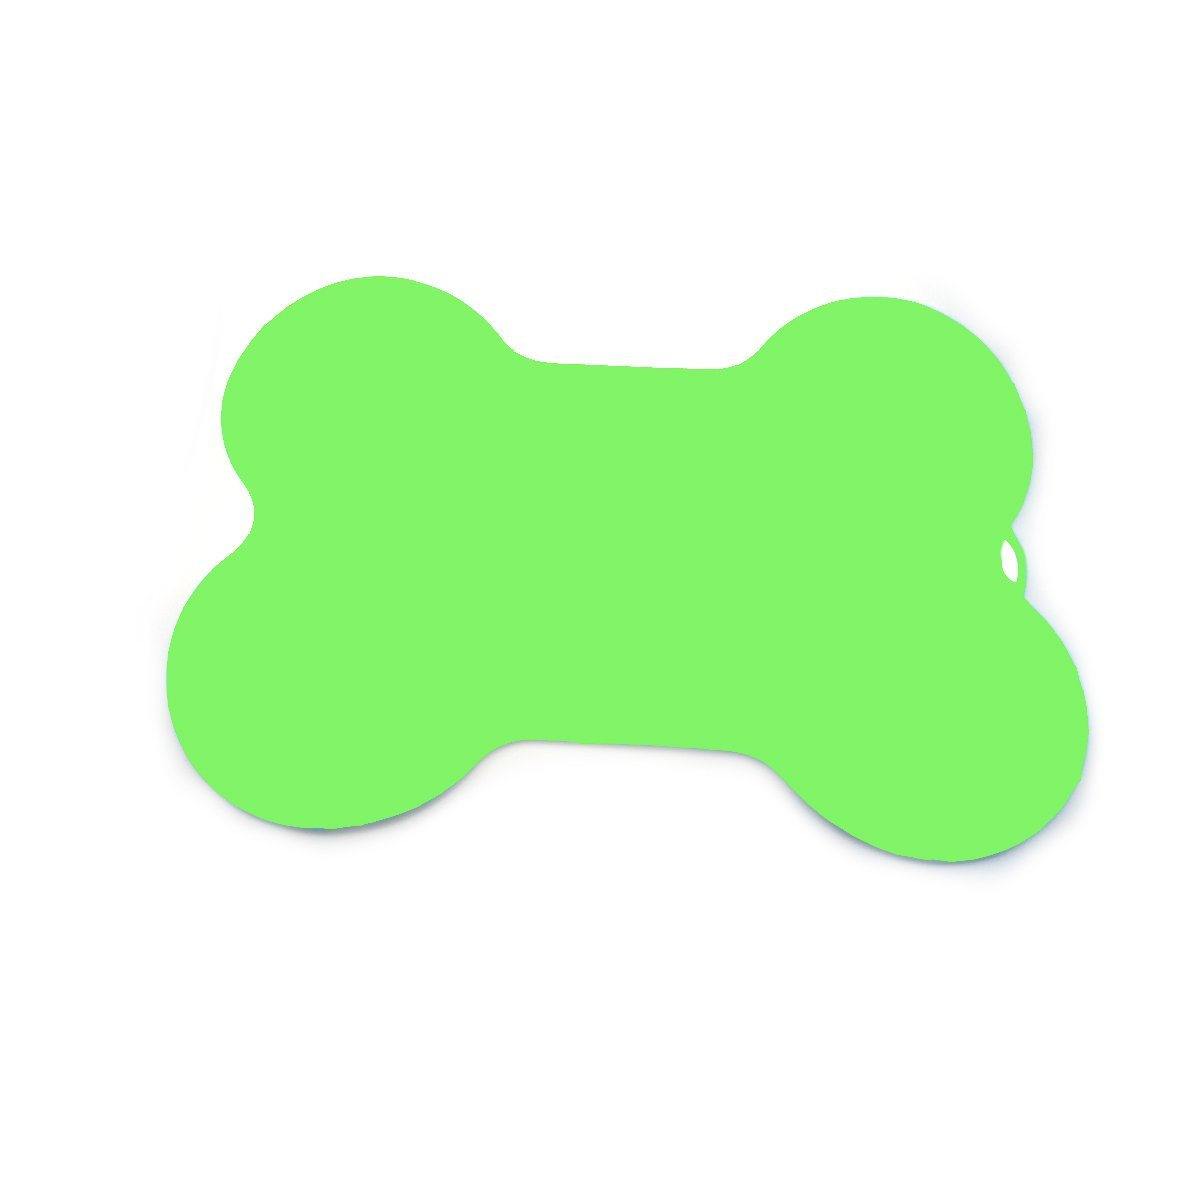 SHOWHASH Feeding Mat, Silicone Waterproof Pet Food Mat, Non Slip Dog Bowl Placemat for Small, Medium & Large Dogs, Cats (Green, Bone-shaped)